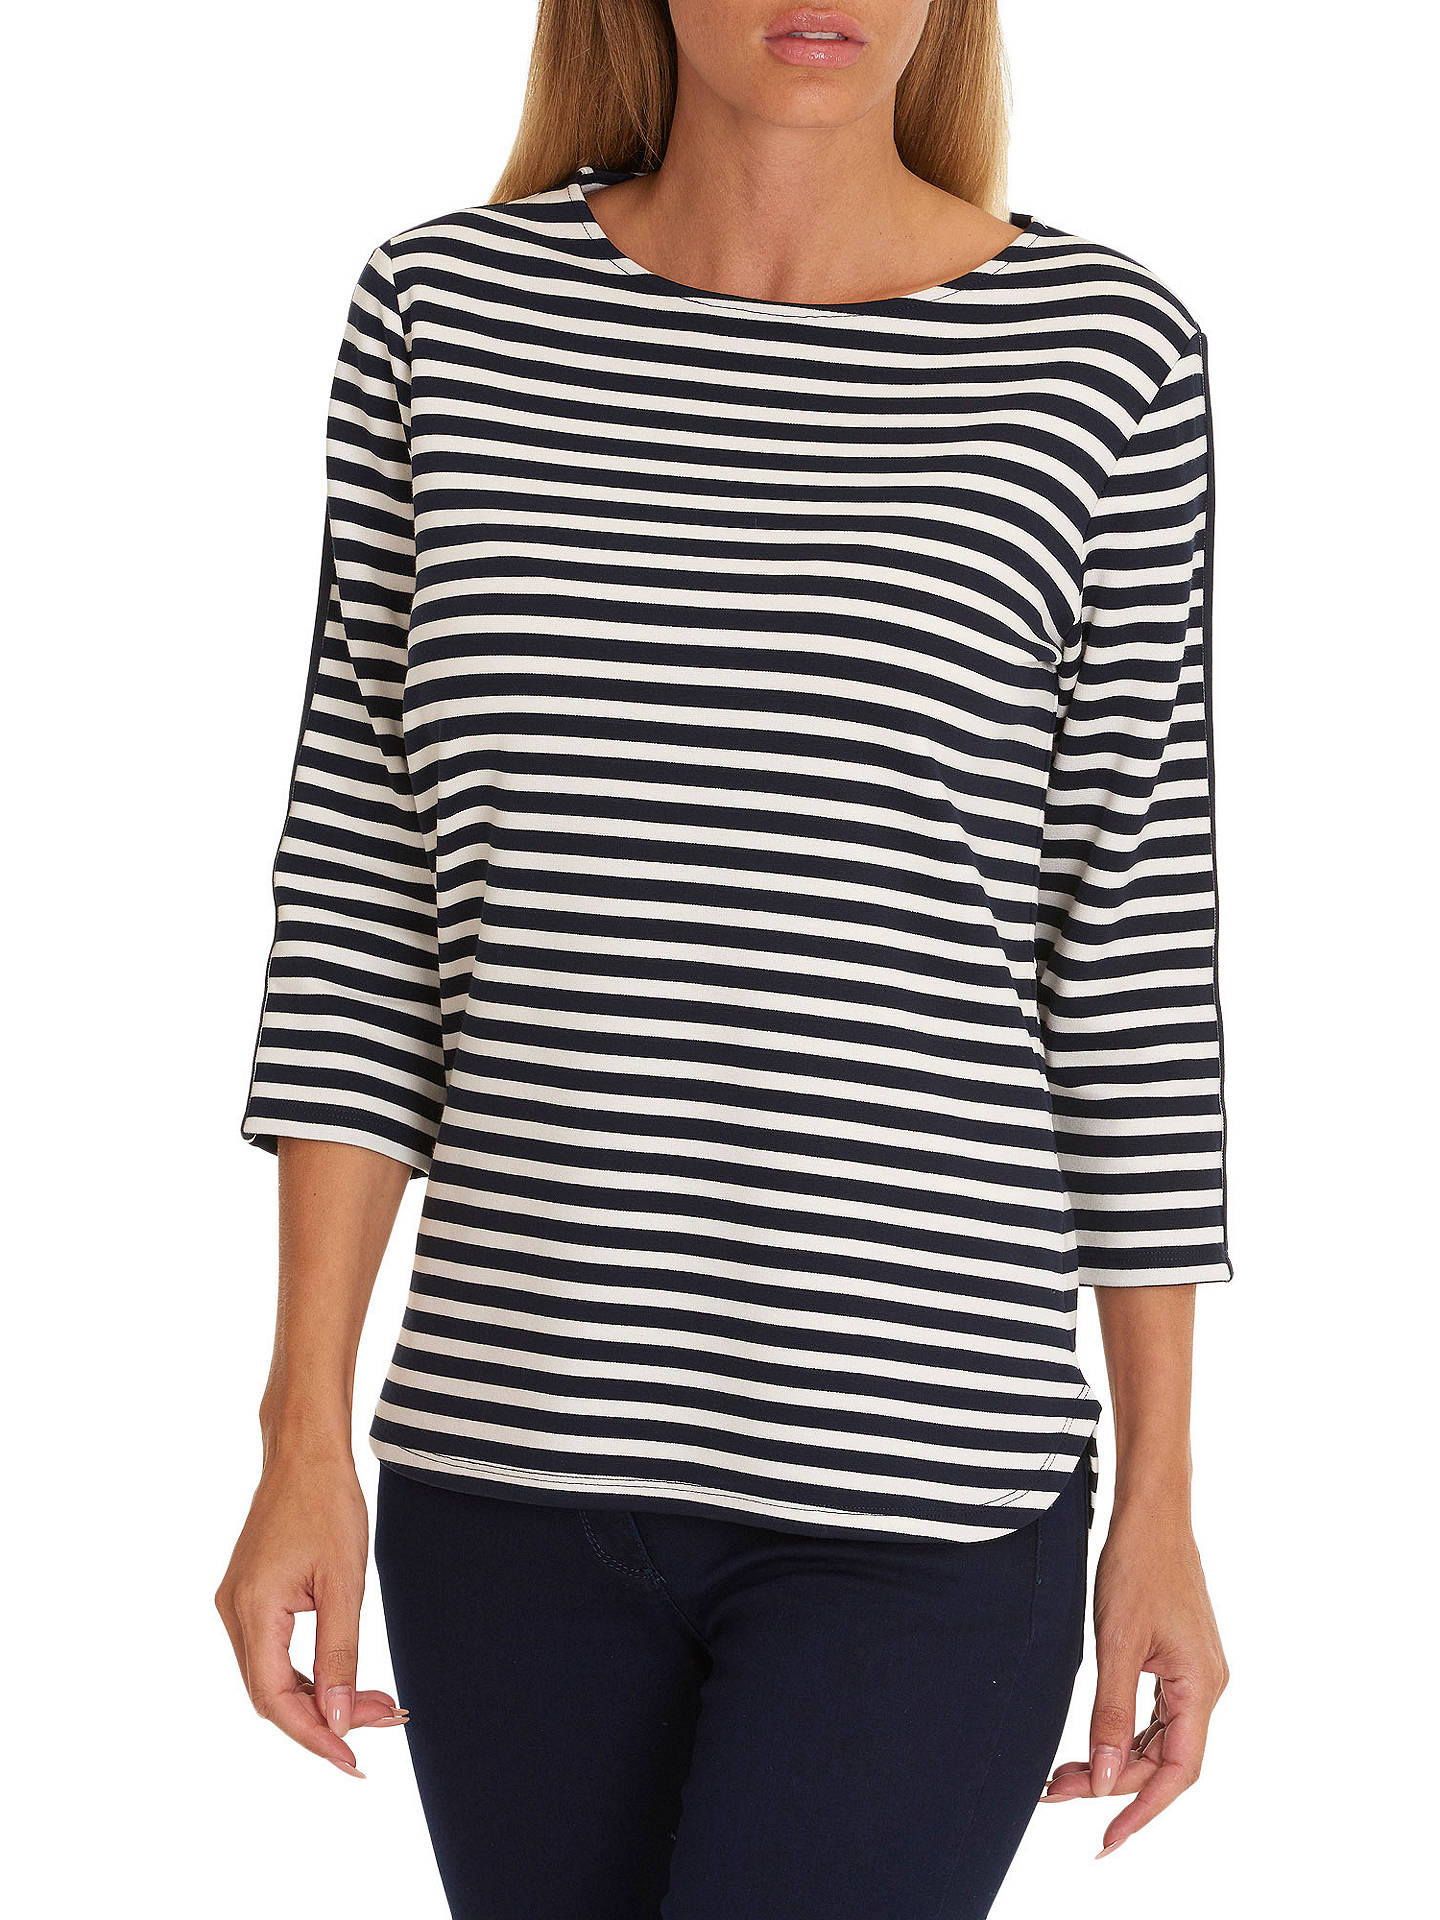 Buy Betty Barclay Striped Top, Dark Blue/Cream, 8 Online at johnlewis.com